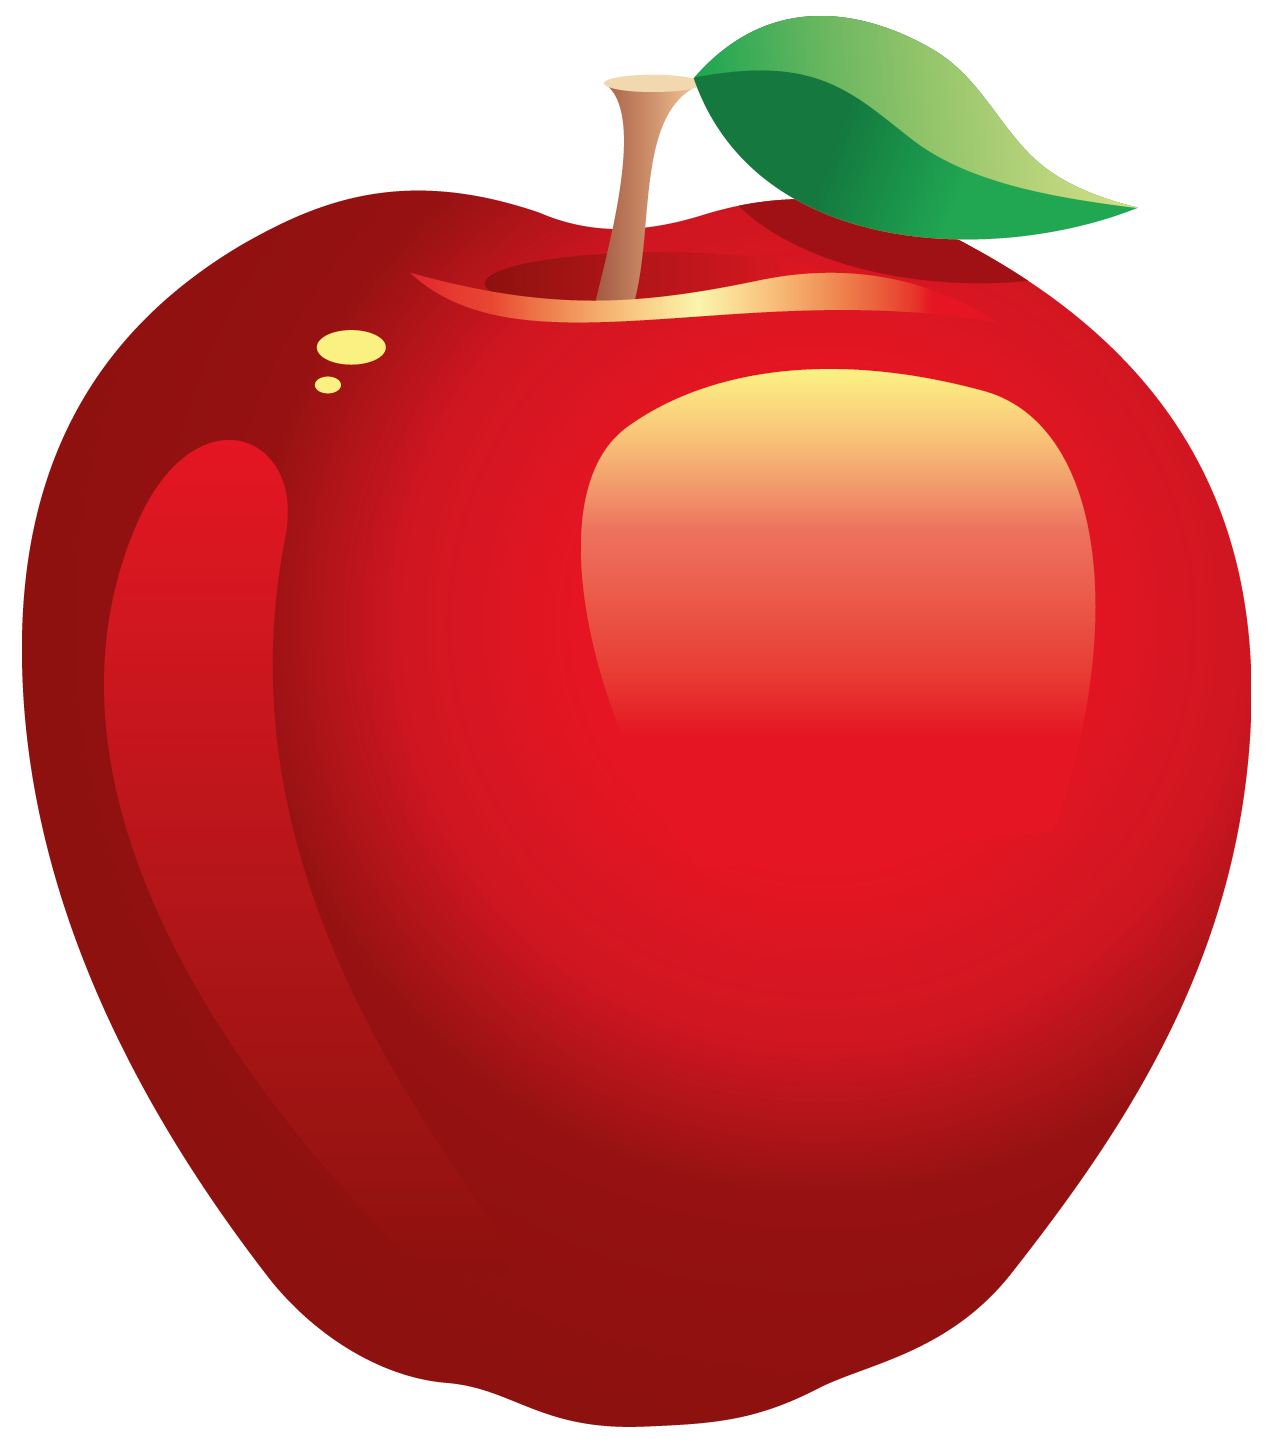 Free Apple Clip Art - clipartall